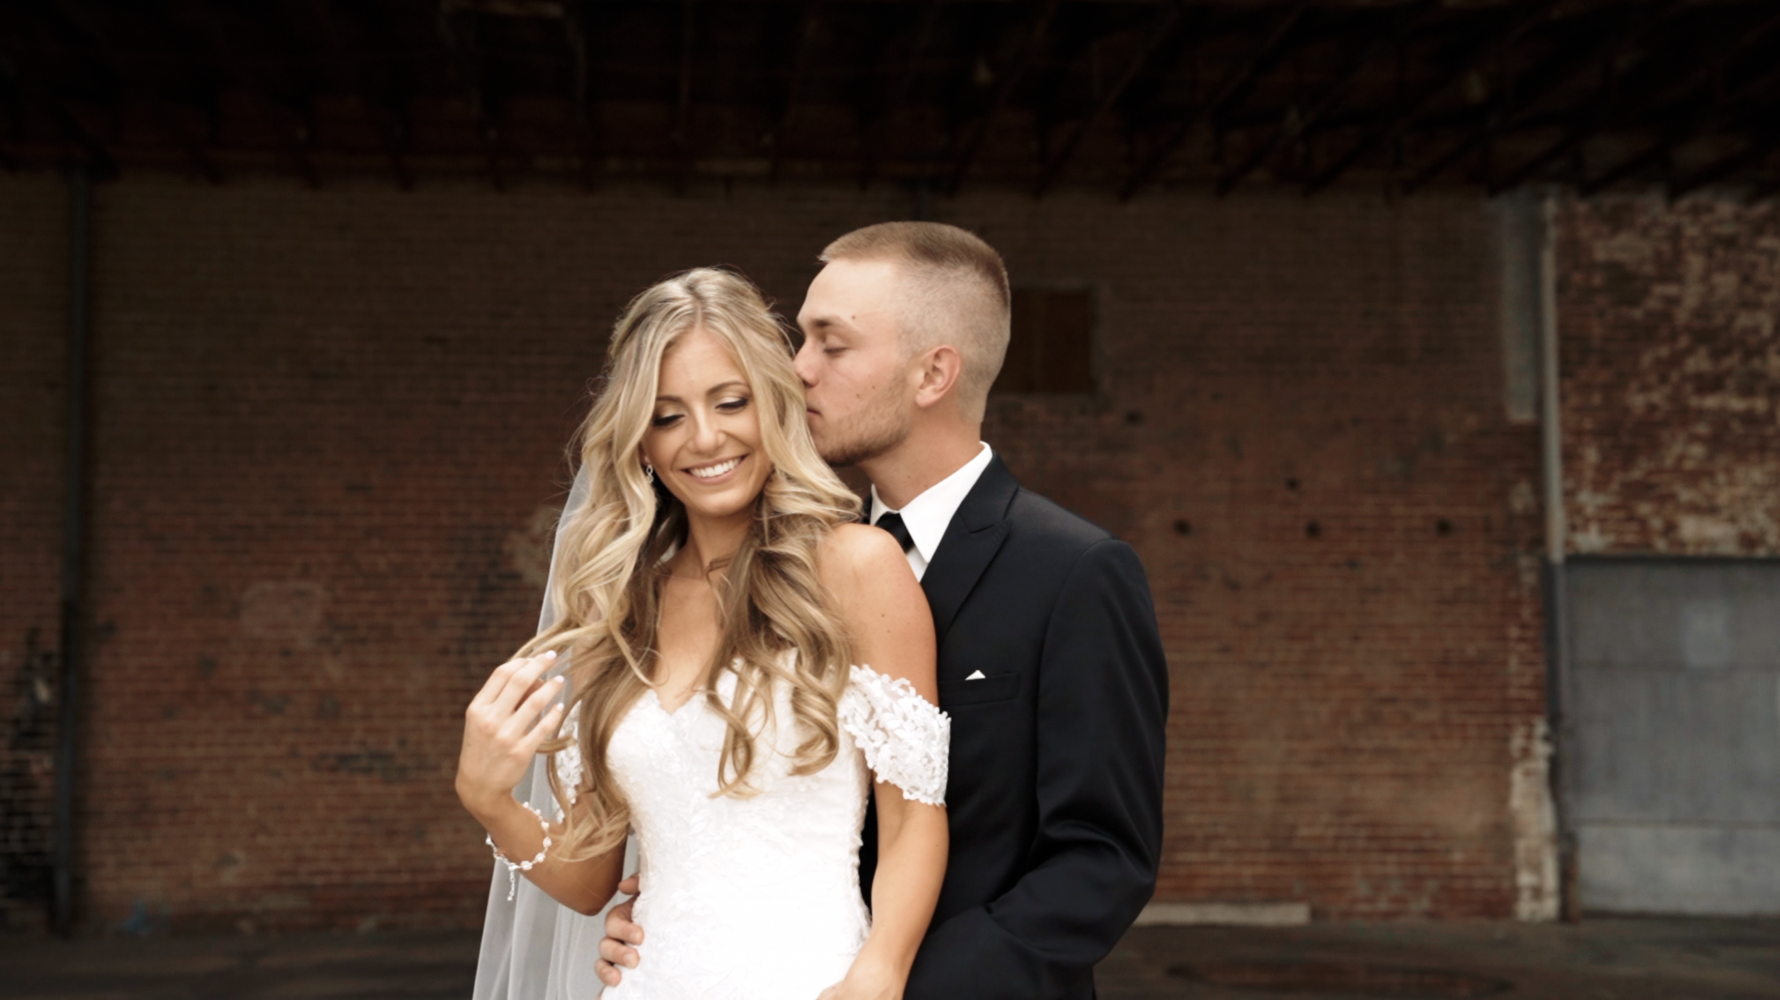 Bailee Haynes + Branson Grieser | Phoenix, Arizona | The Croft Downtown